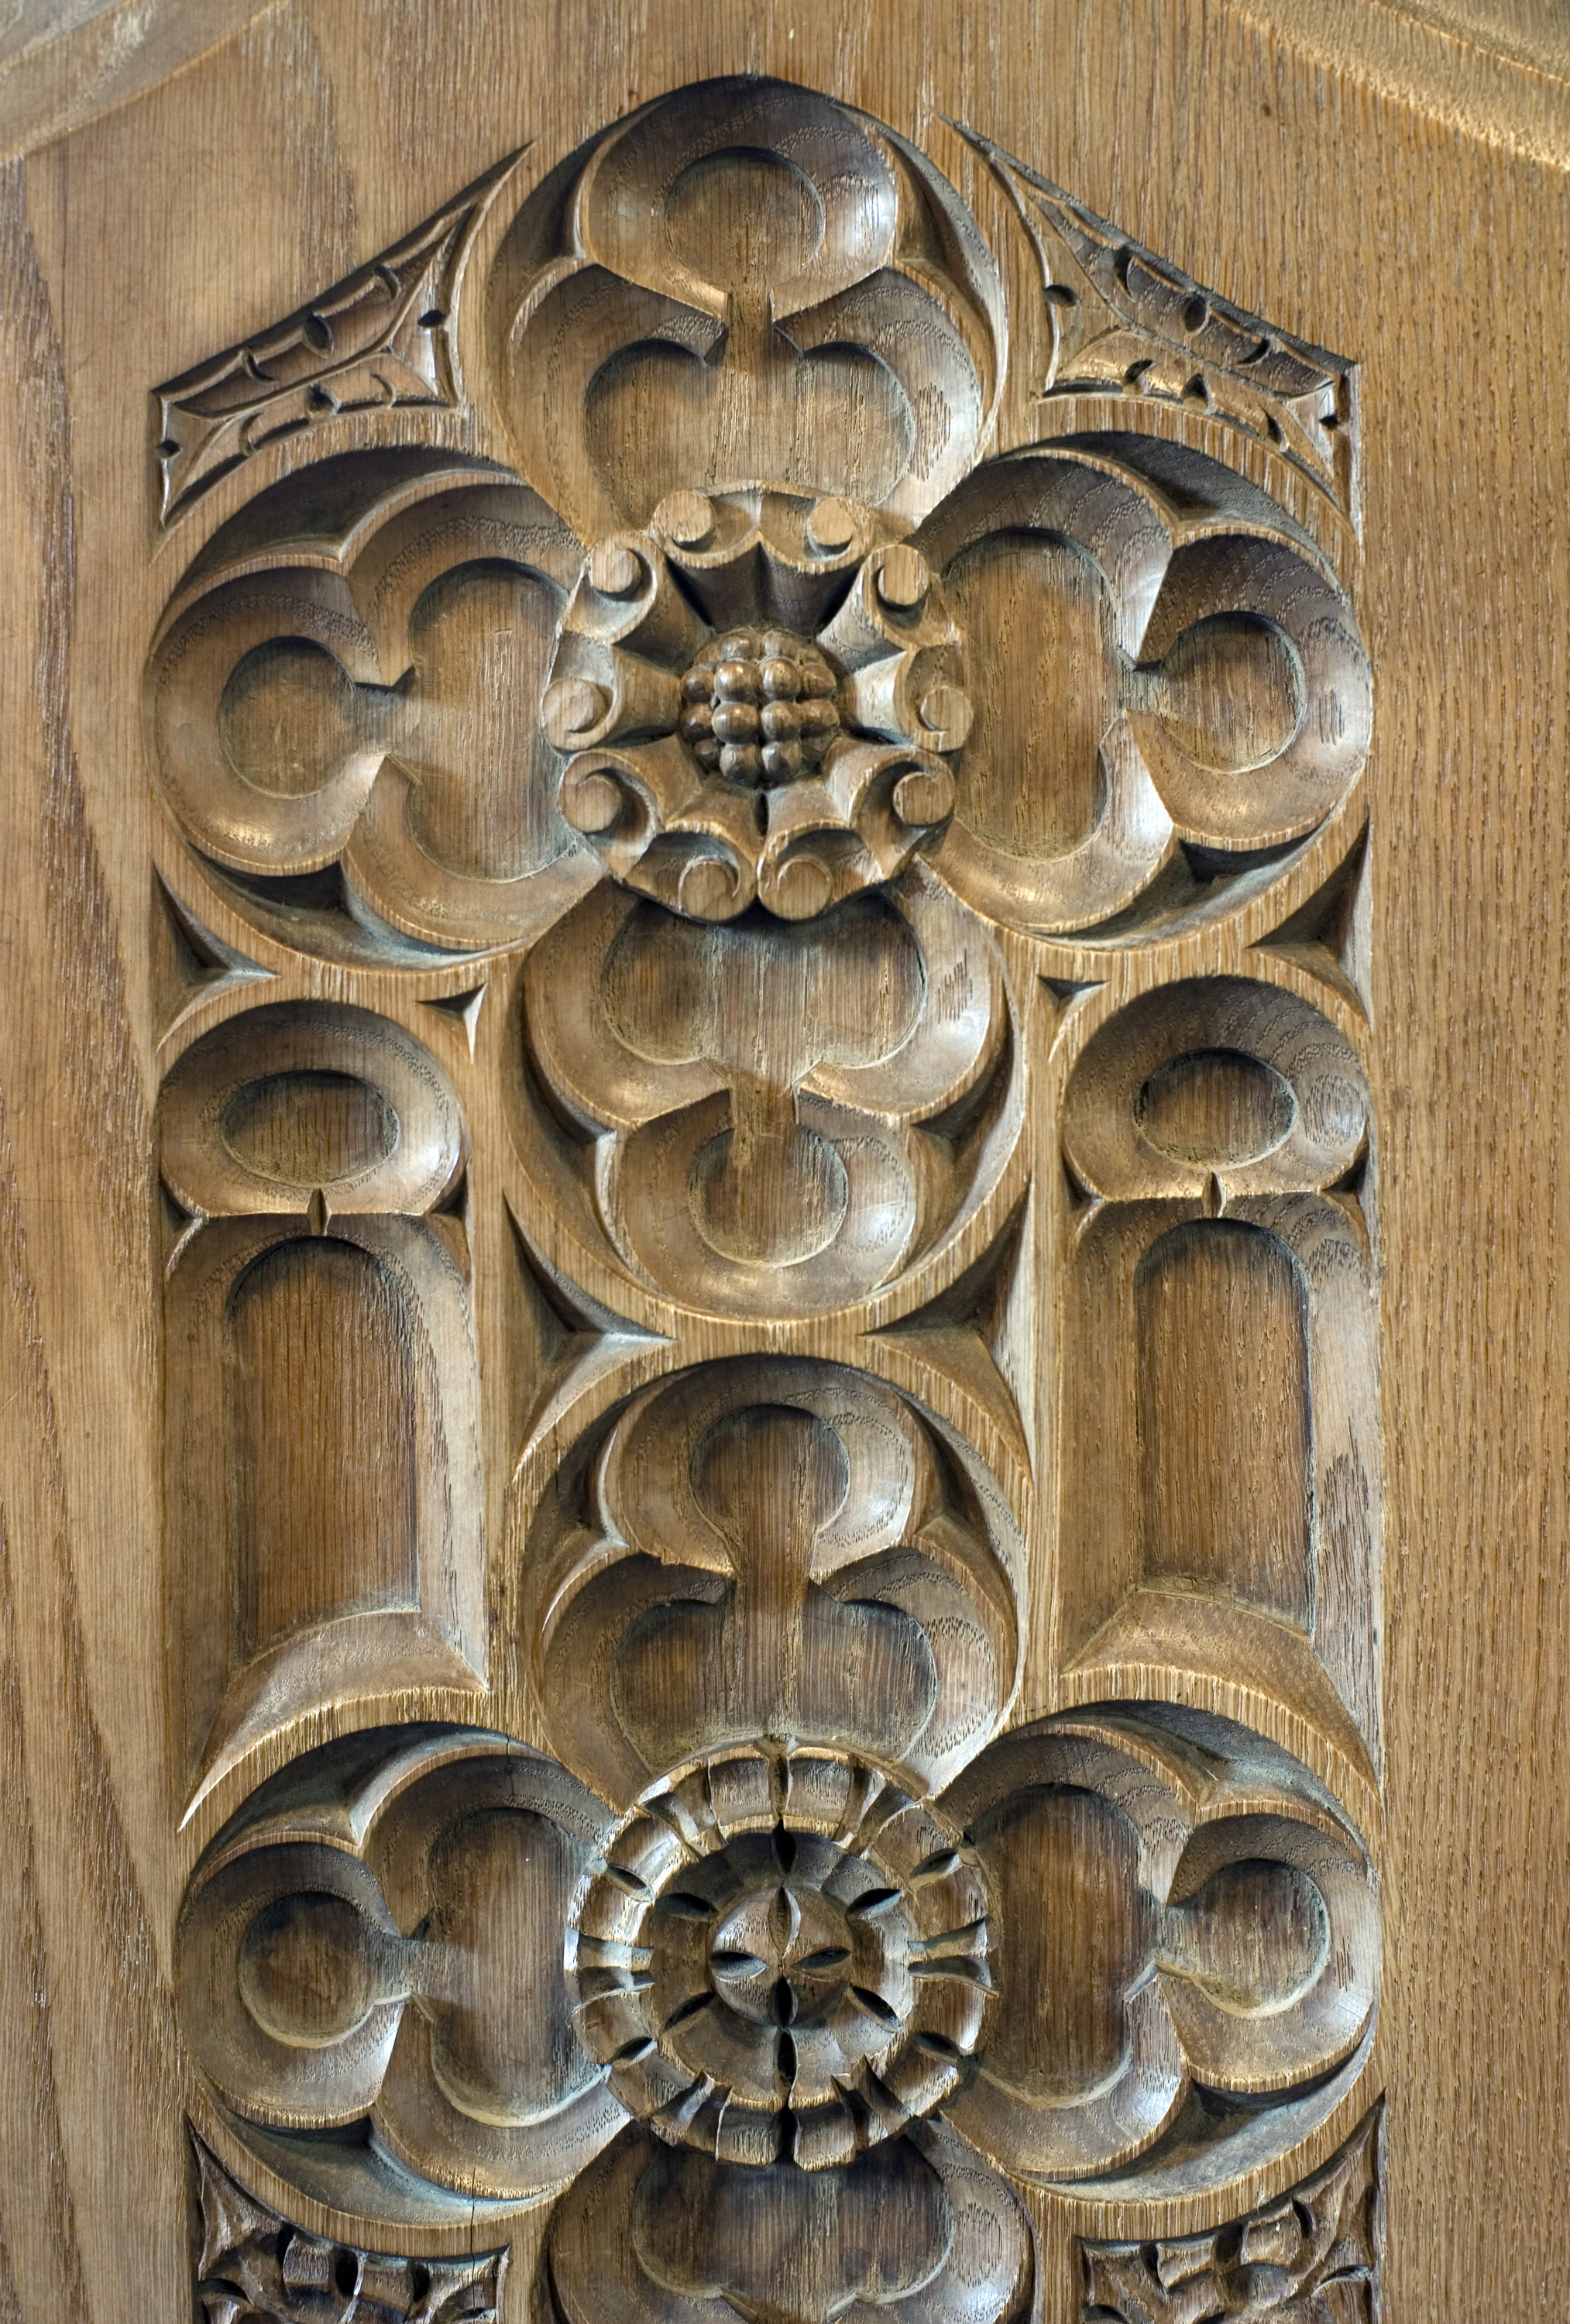 Carved wood panel stockarch free stock photos